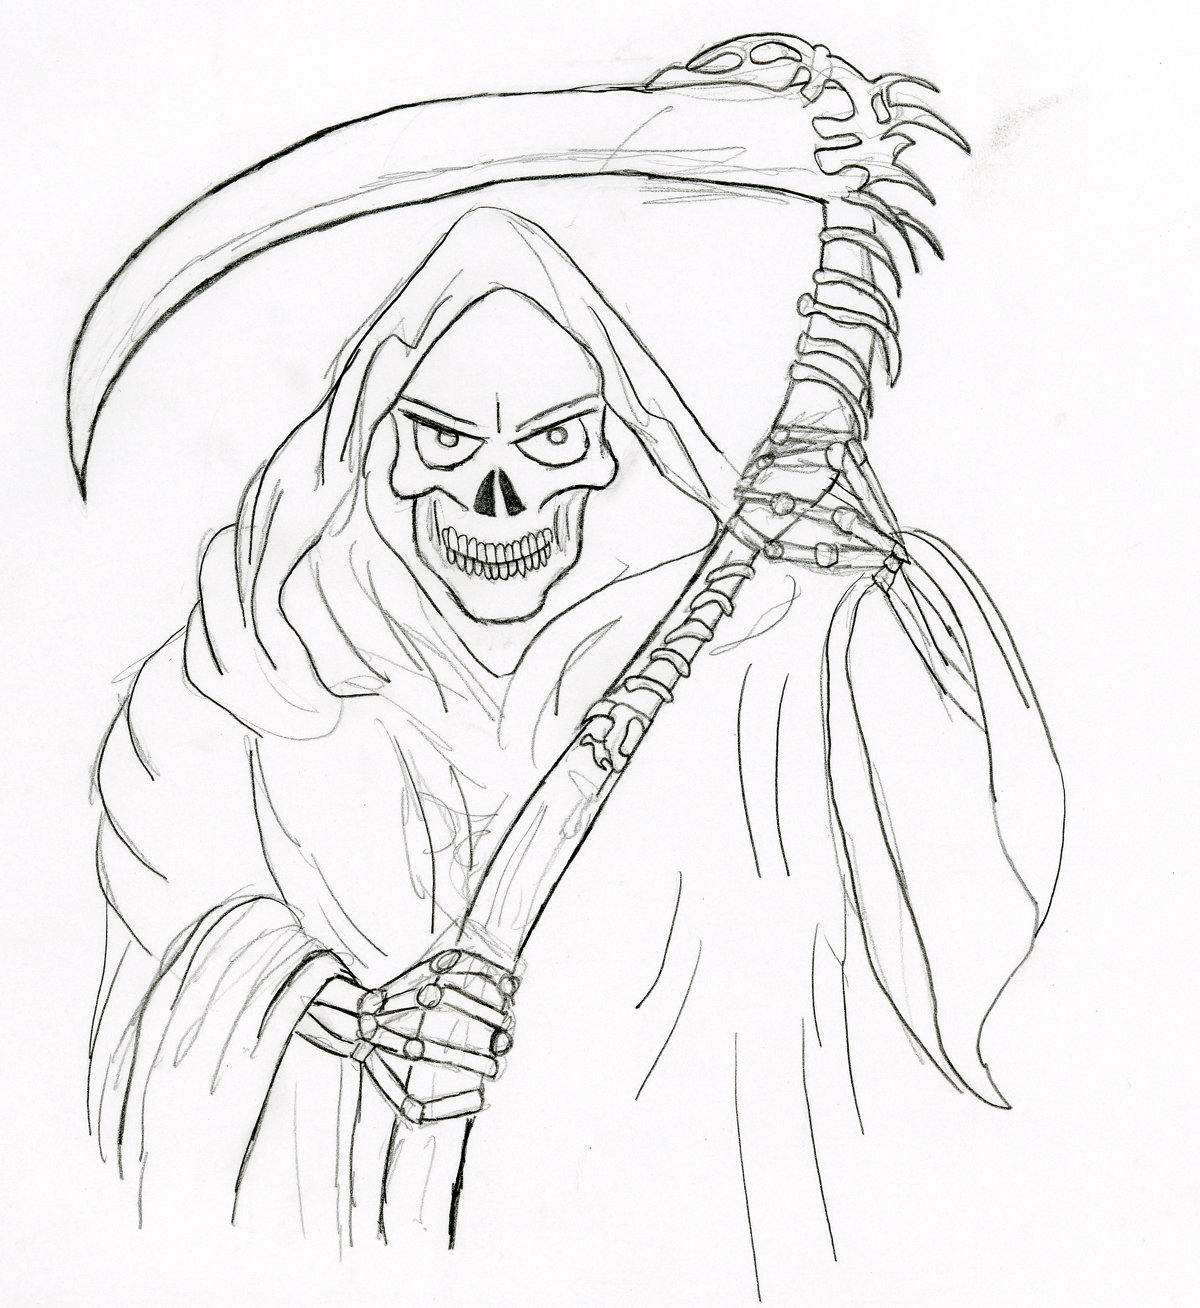 reaper drawing at getdrawings com free for personal use reaper